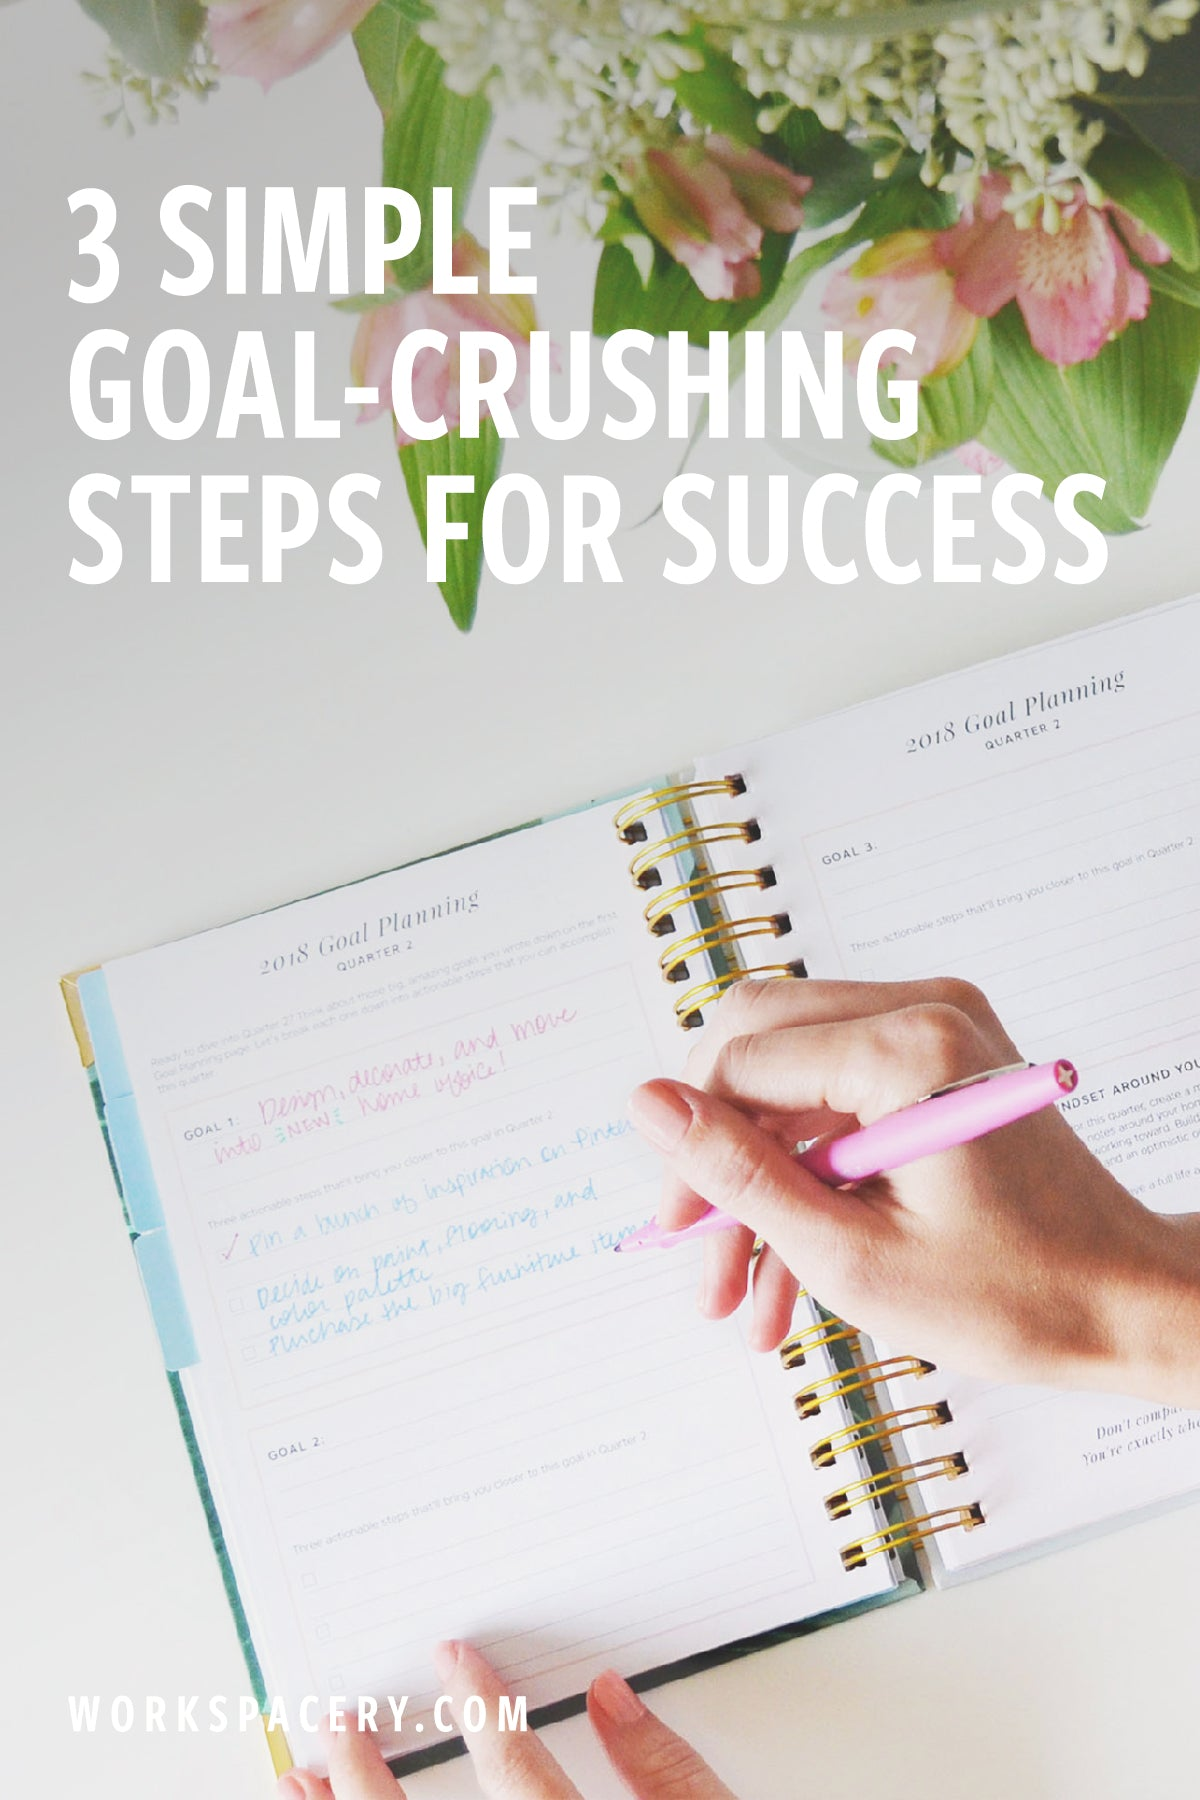 3 Simple Goal-Crushing Steps for Success